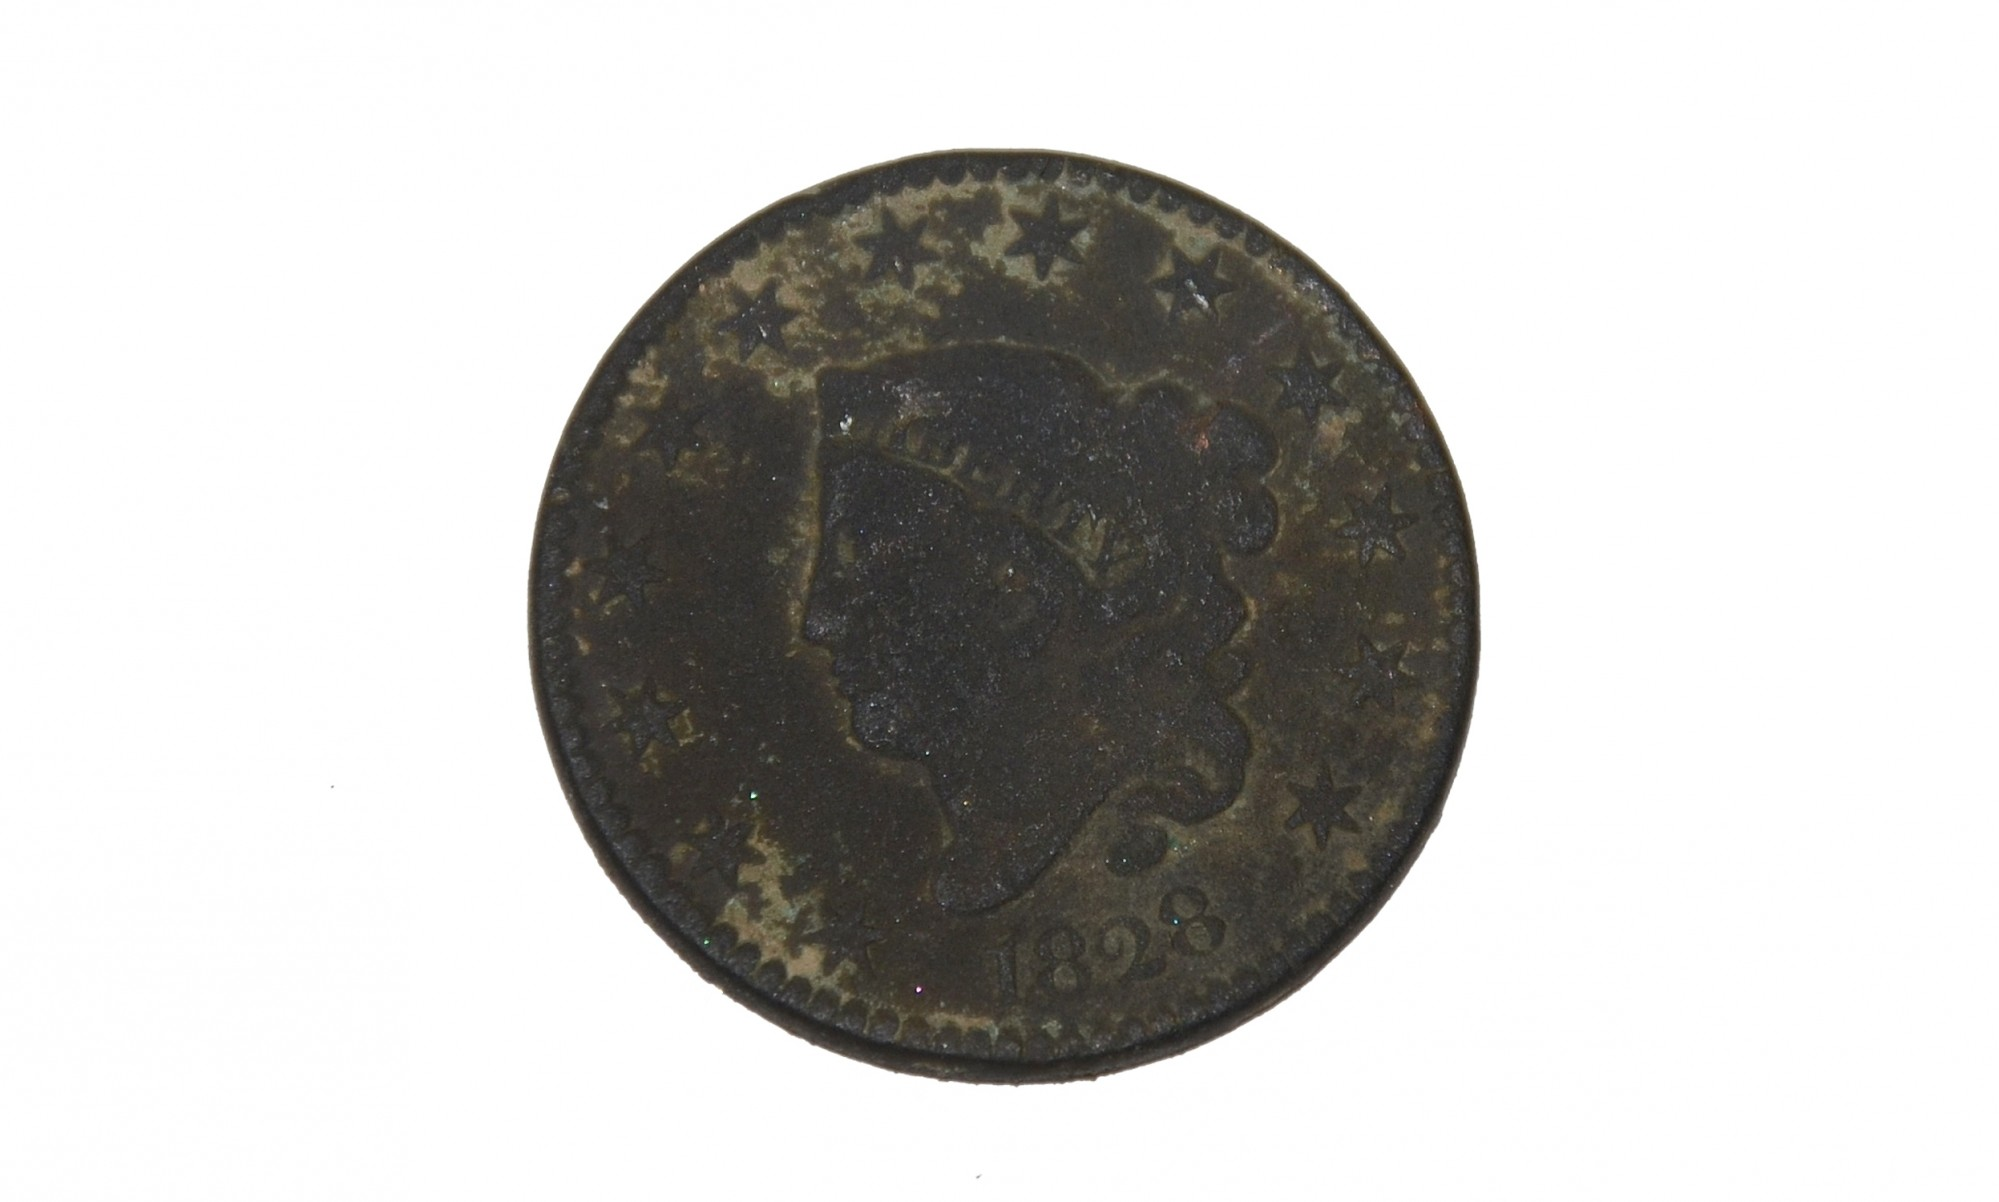 LADY LIBERTY PENNY, DATED 1828, RECOVERED FROM TROSTLE FARM, GETTYSBURG